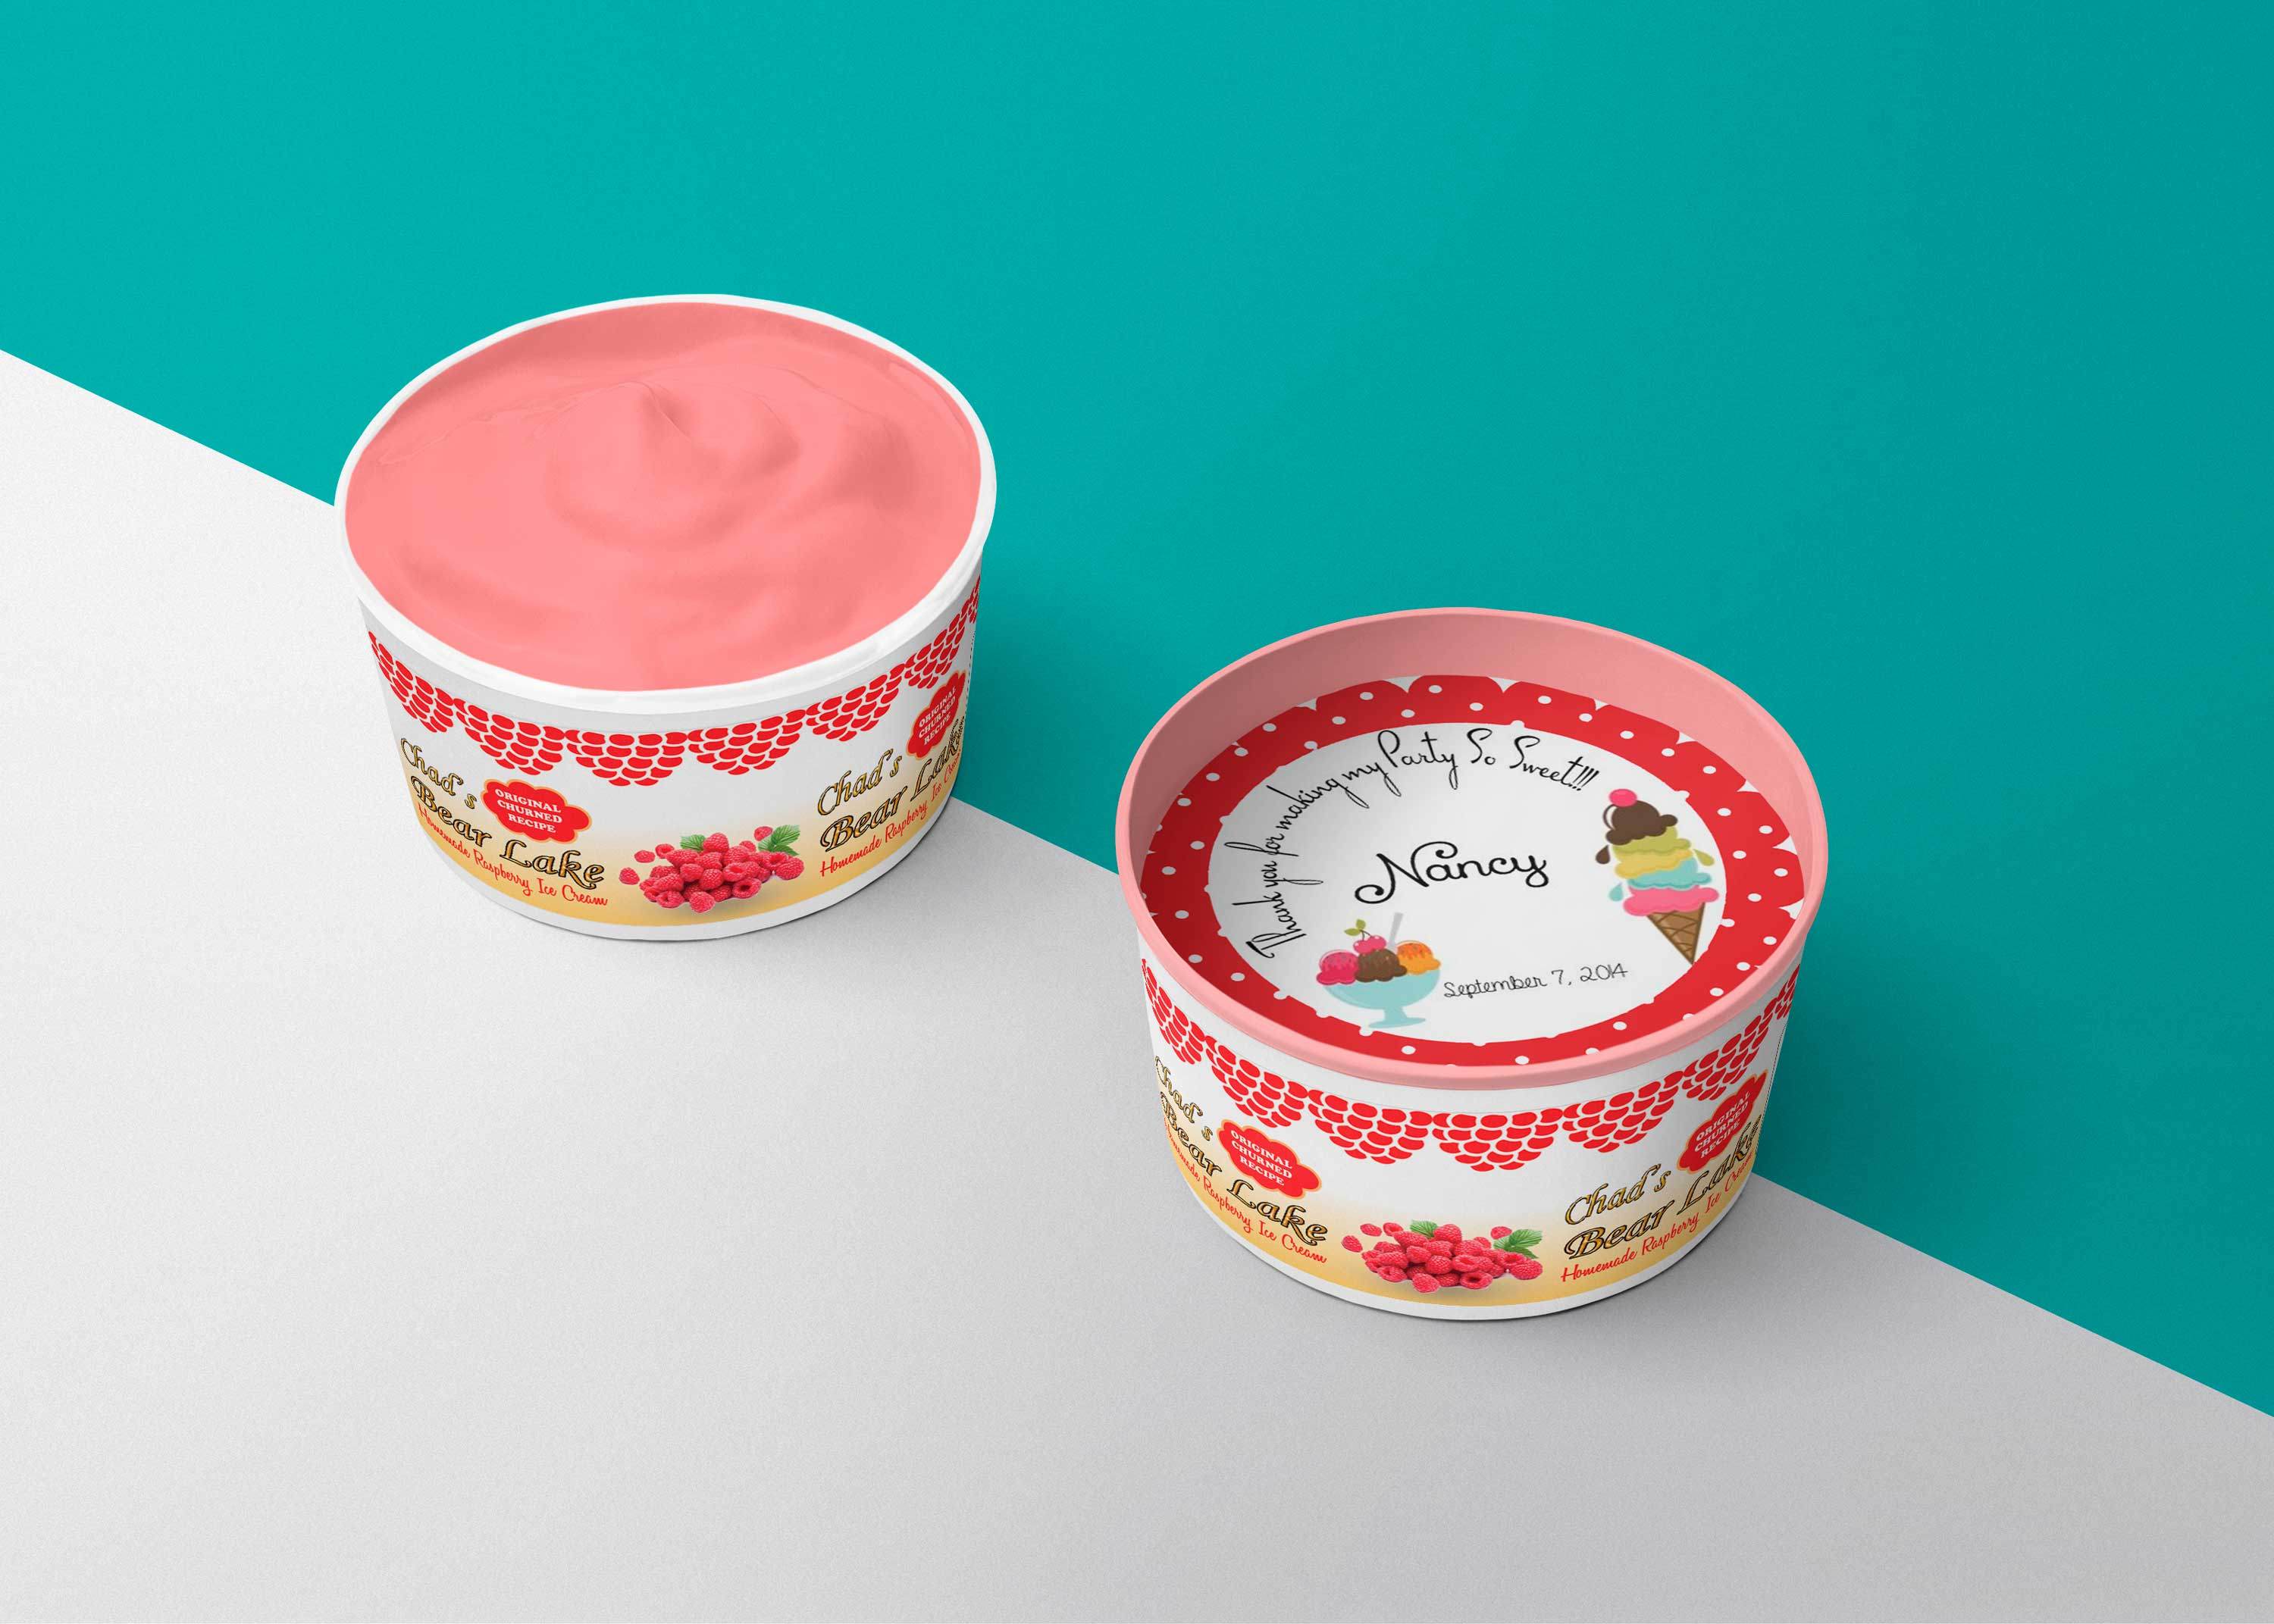 Free Strawberry Ice Cream Cup Mockup